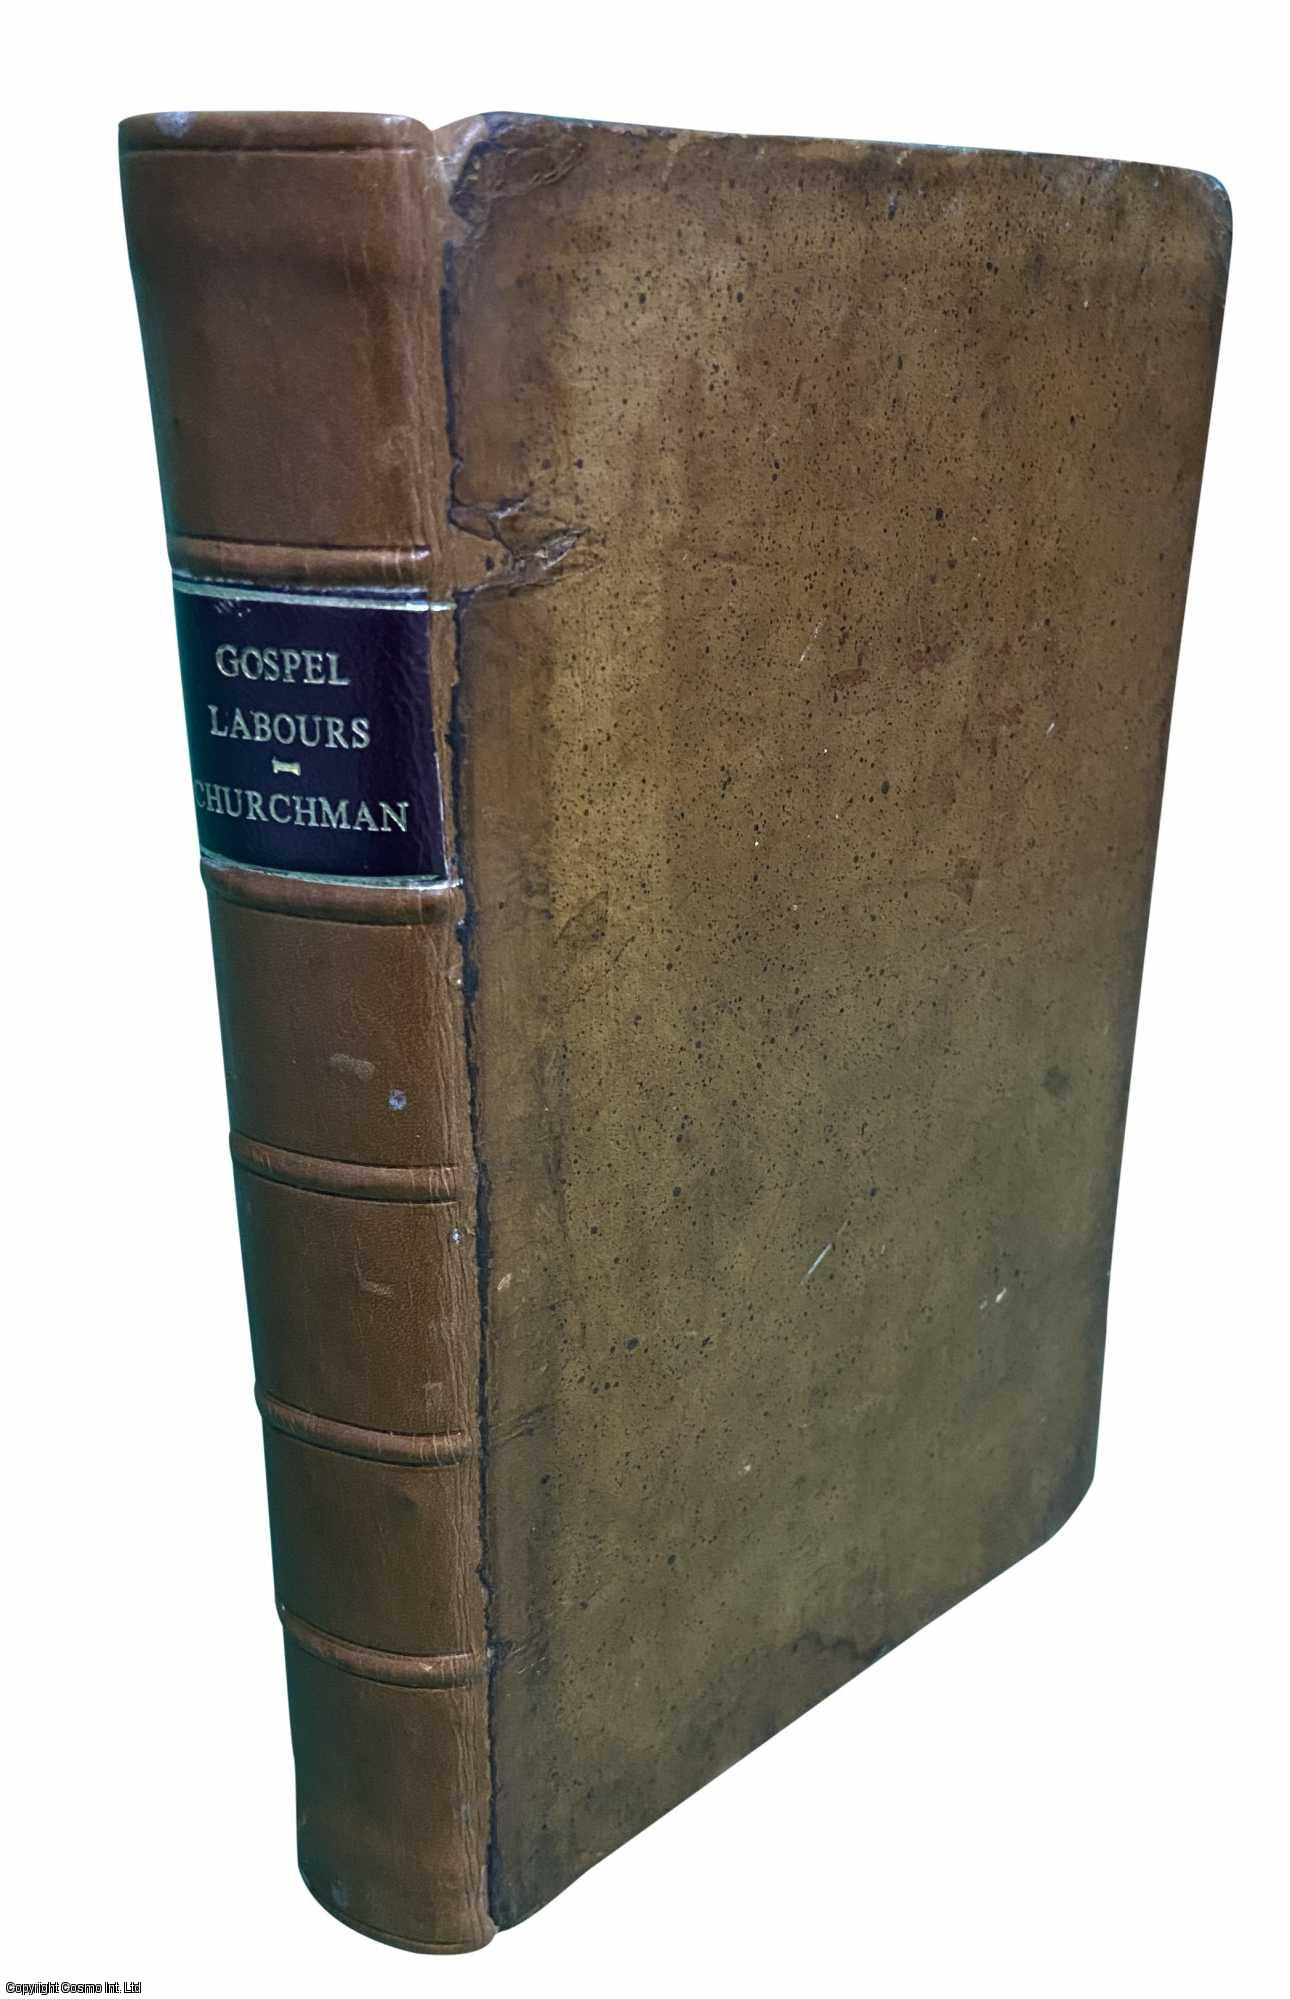 An Account of the Gospel Labours and Christian Experiences of a Faithful Mininster of Christ FIRST UK EDITION 1780, Churchman John